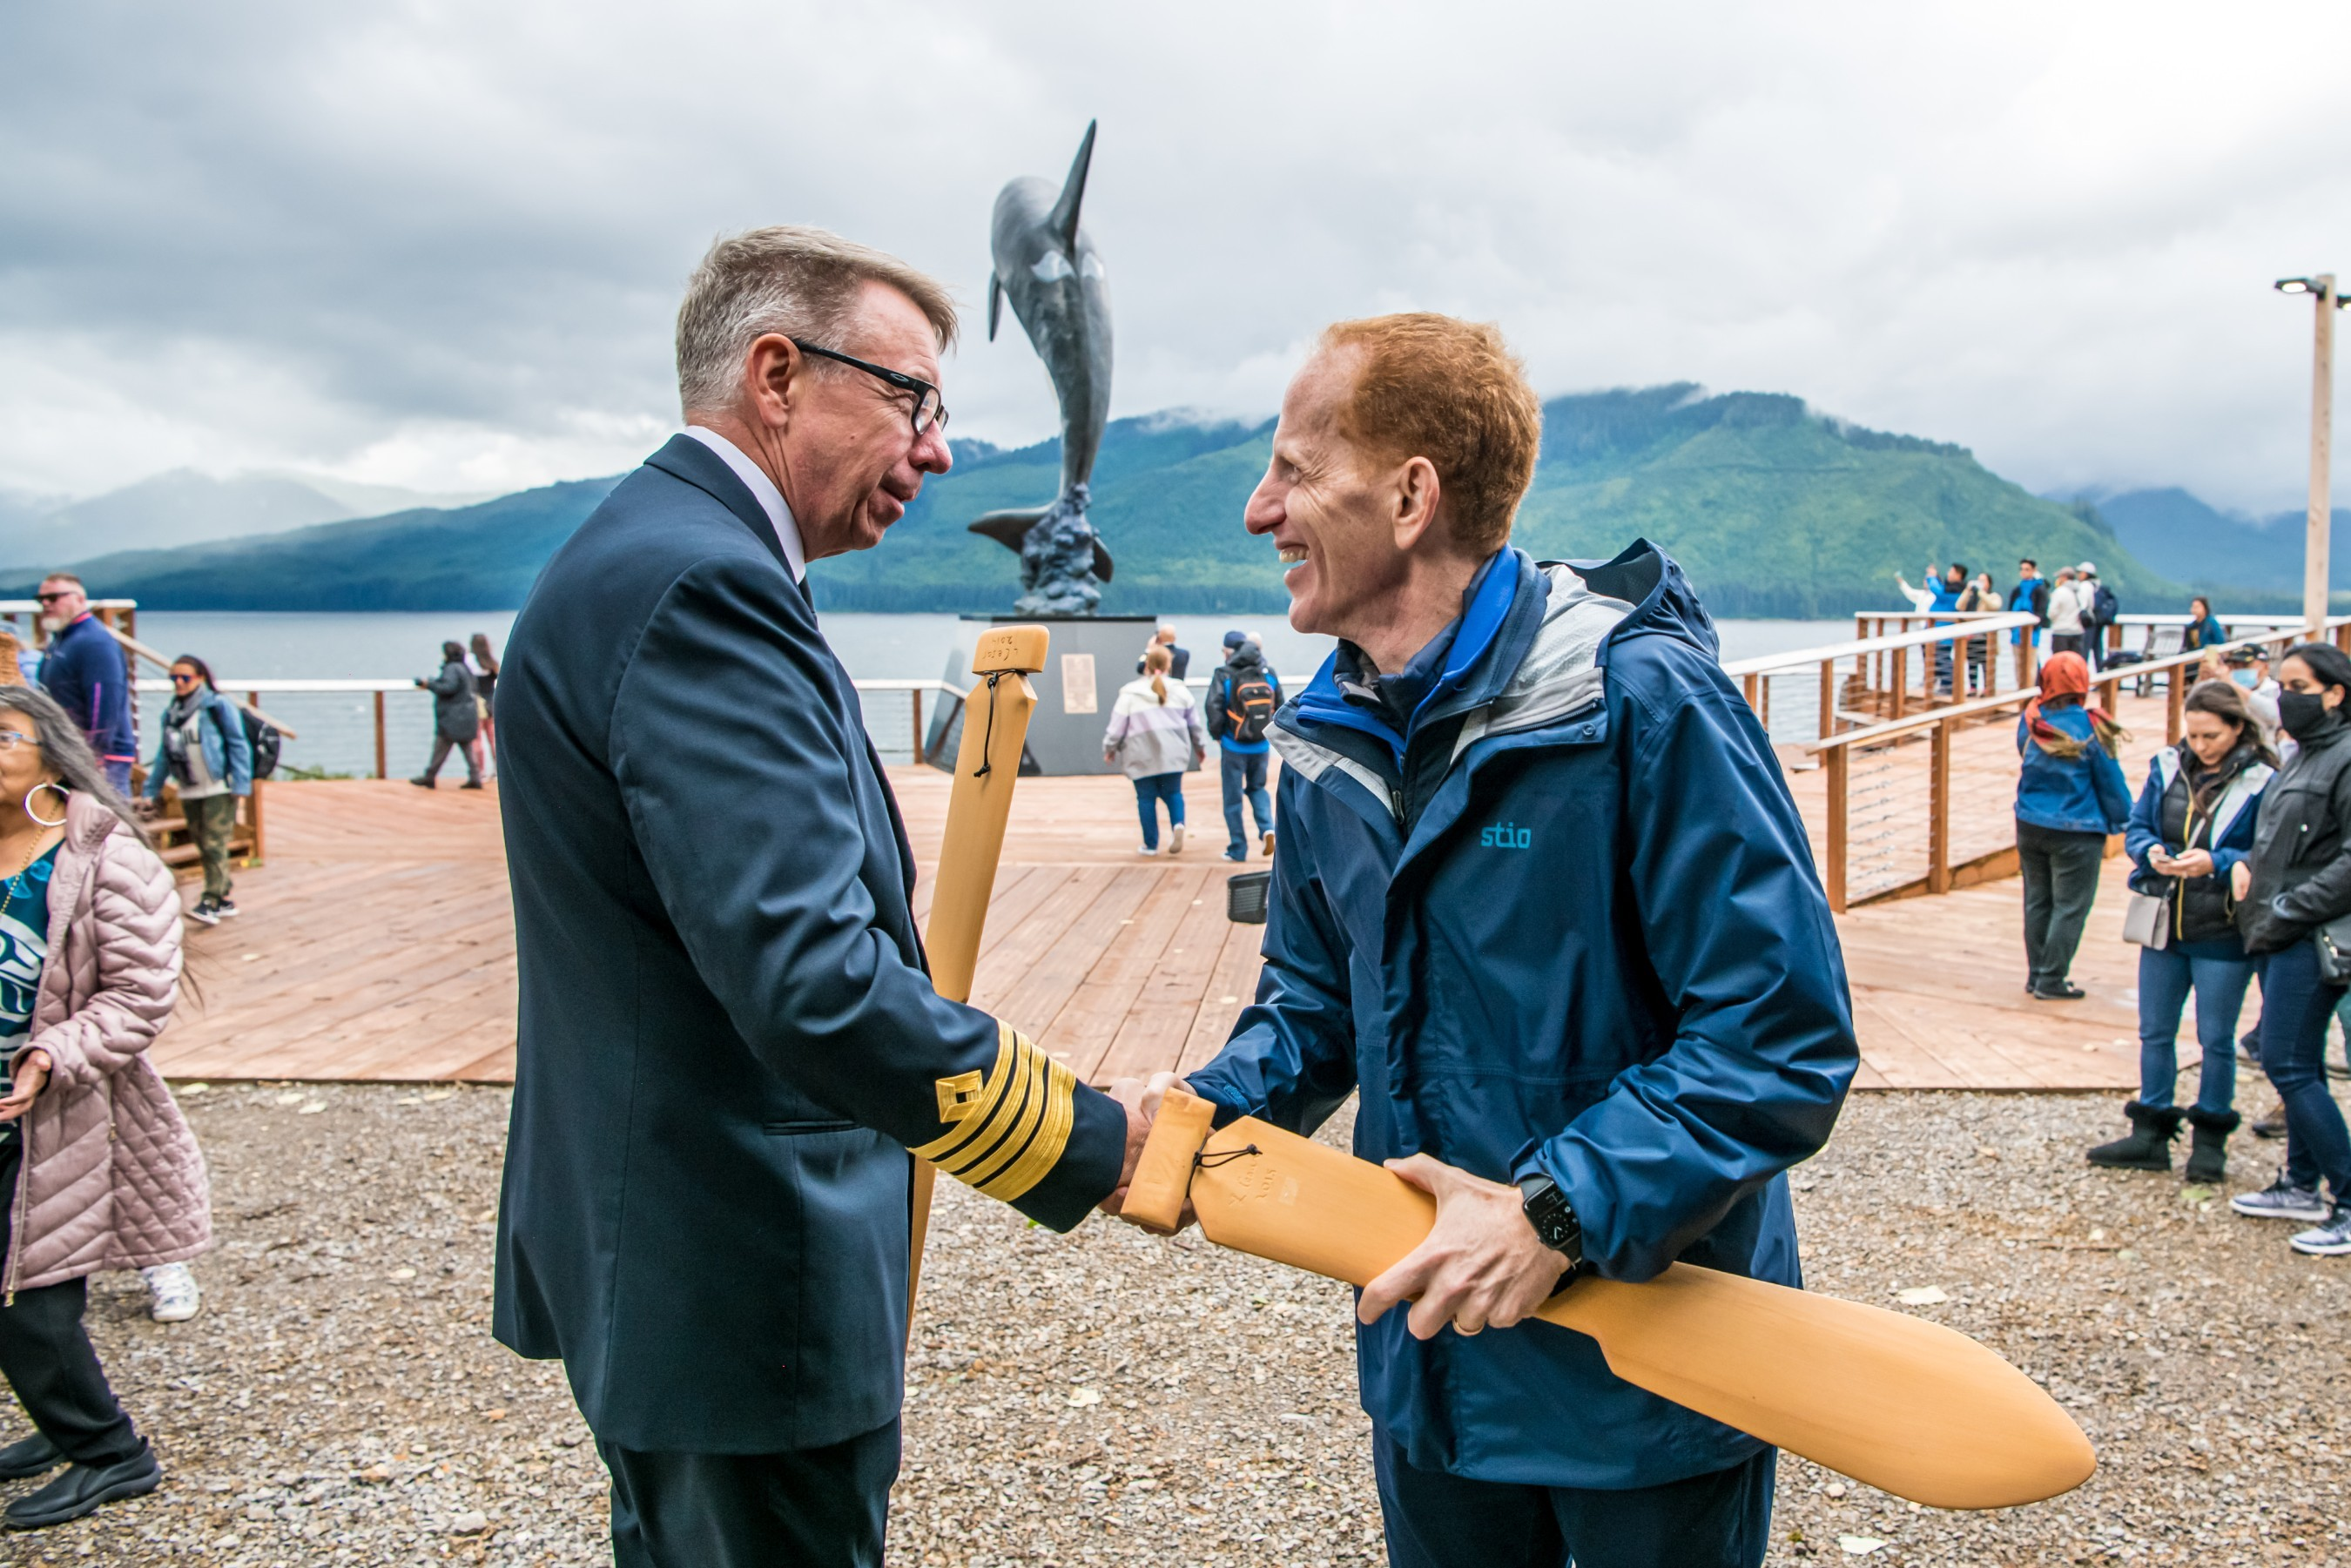 Norwegian Encore's Captain Martin Holmqvist and NCL President and CEO Harry Sommer celebrate the Company's return to Alaska after its 500-day pause in operations. Photos by Alive Coverage.